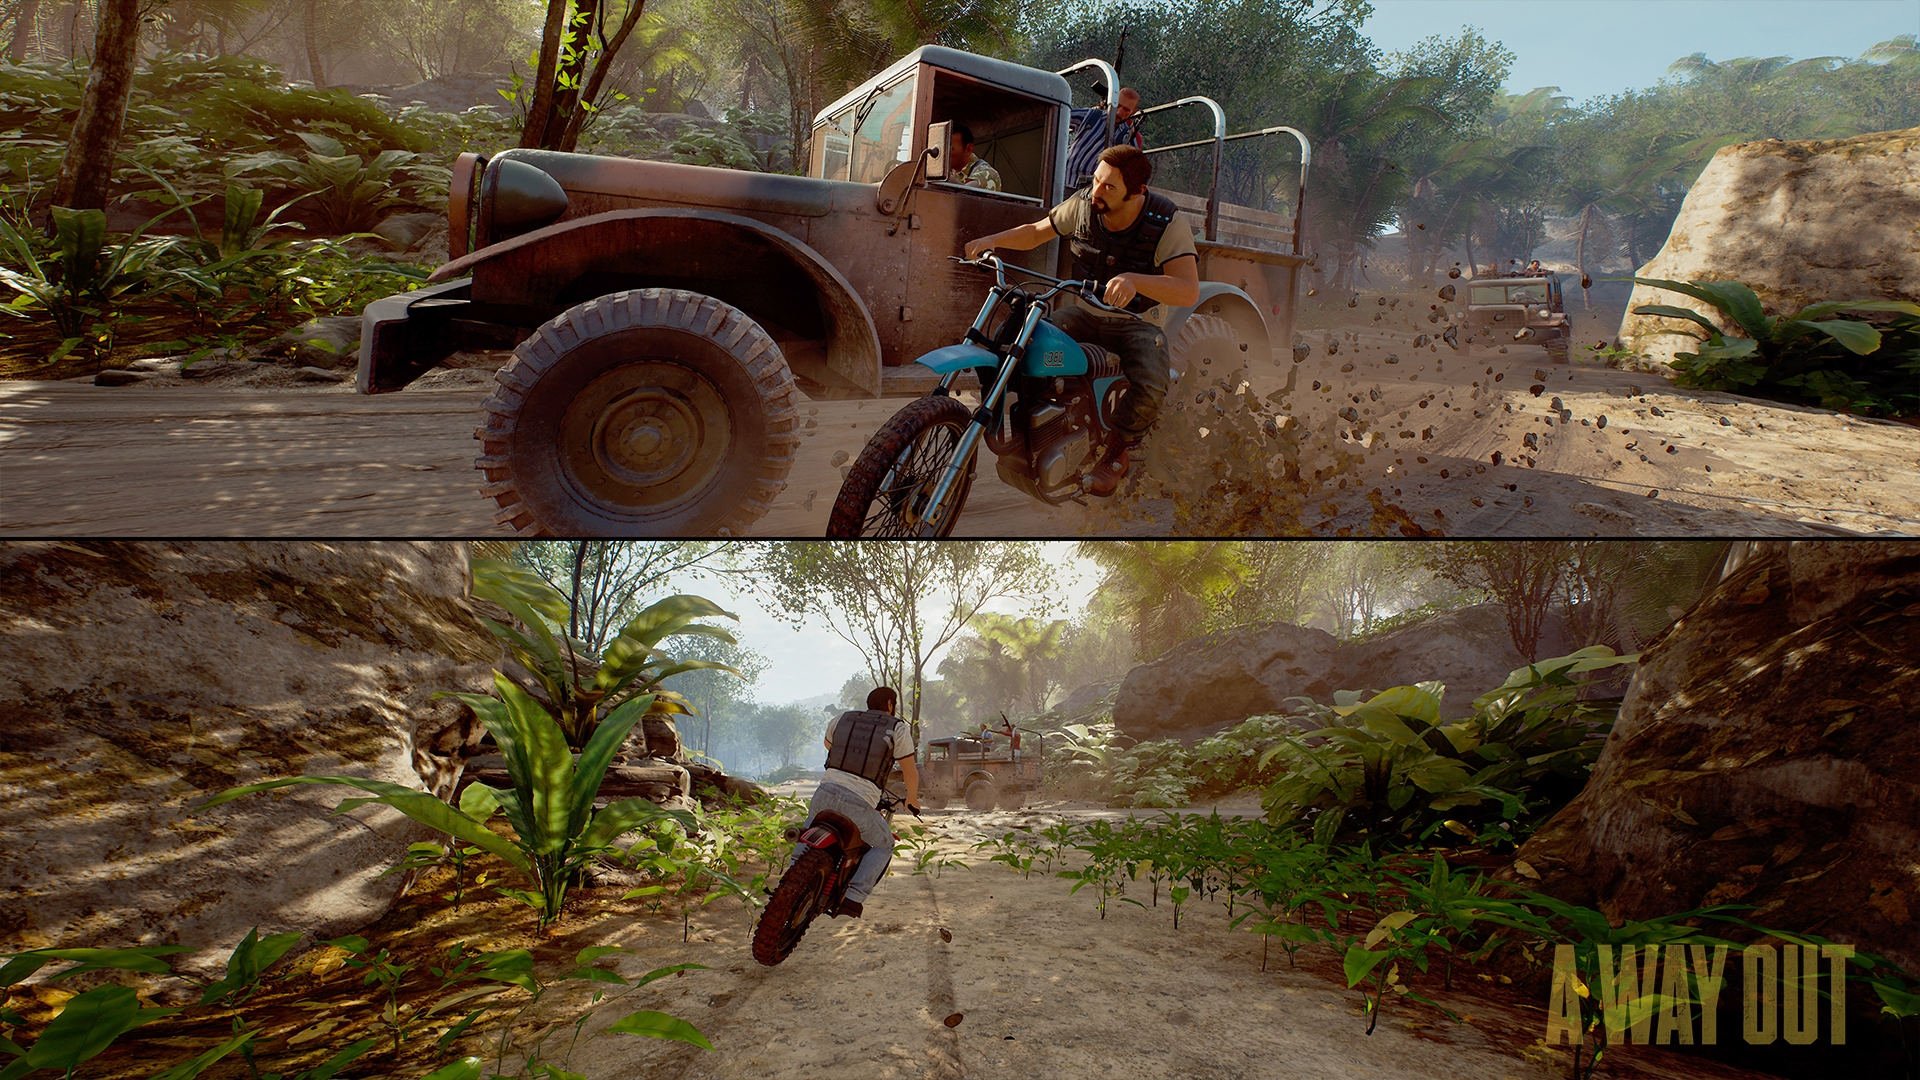 A Way Out mixes up various gameplay mechanics, perspectives and more to  deliver a co